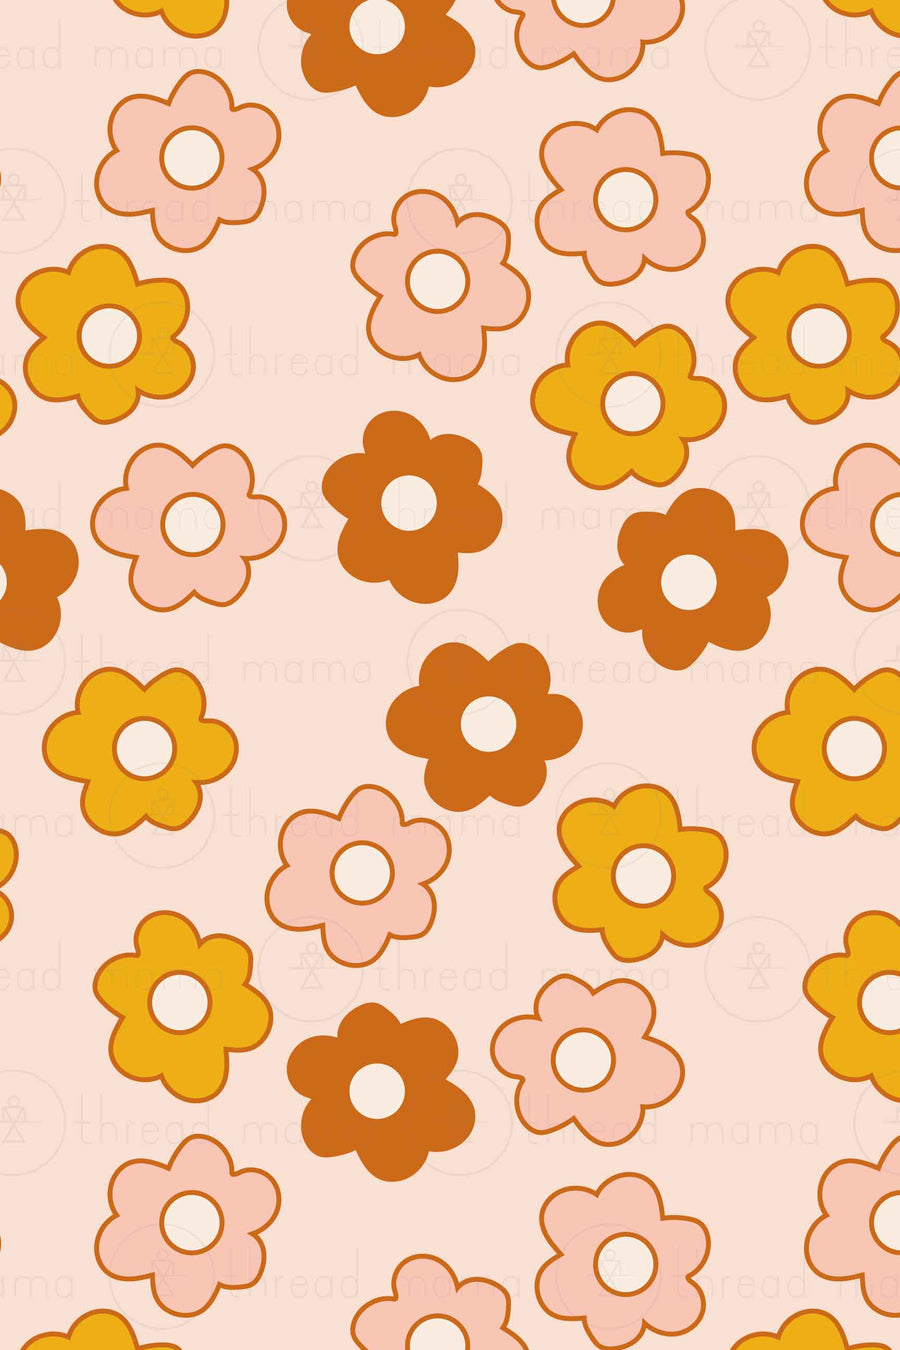 Repeating Pattern 66 Collection (Seamless)